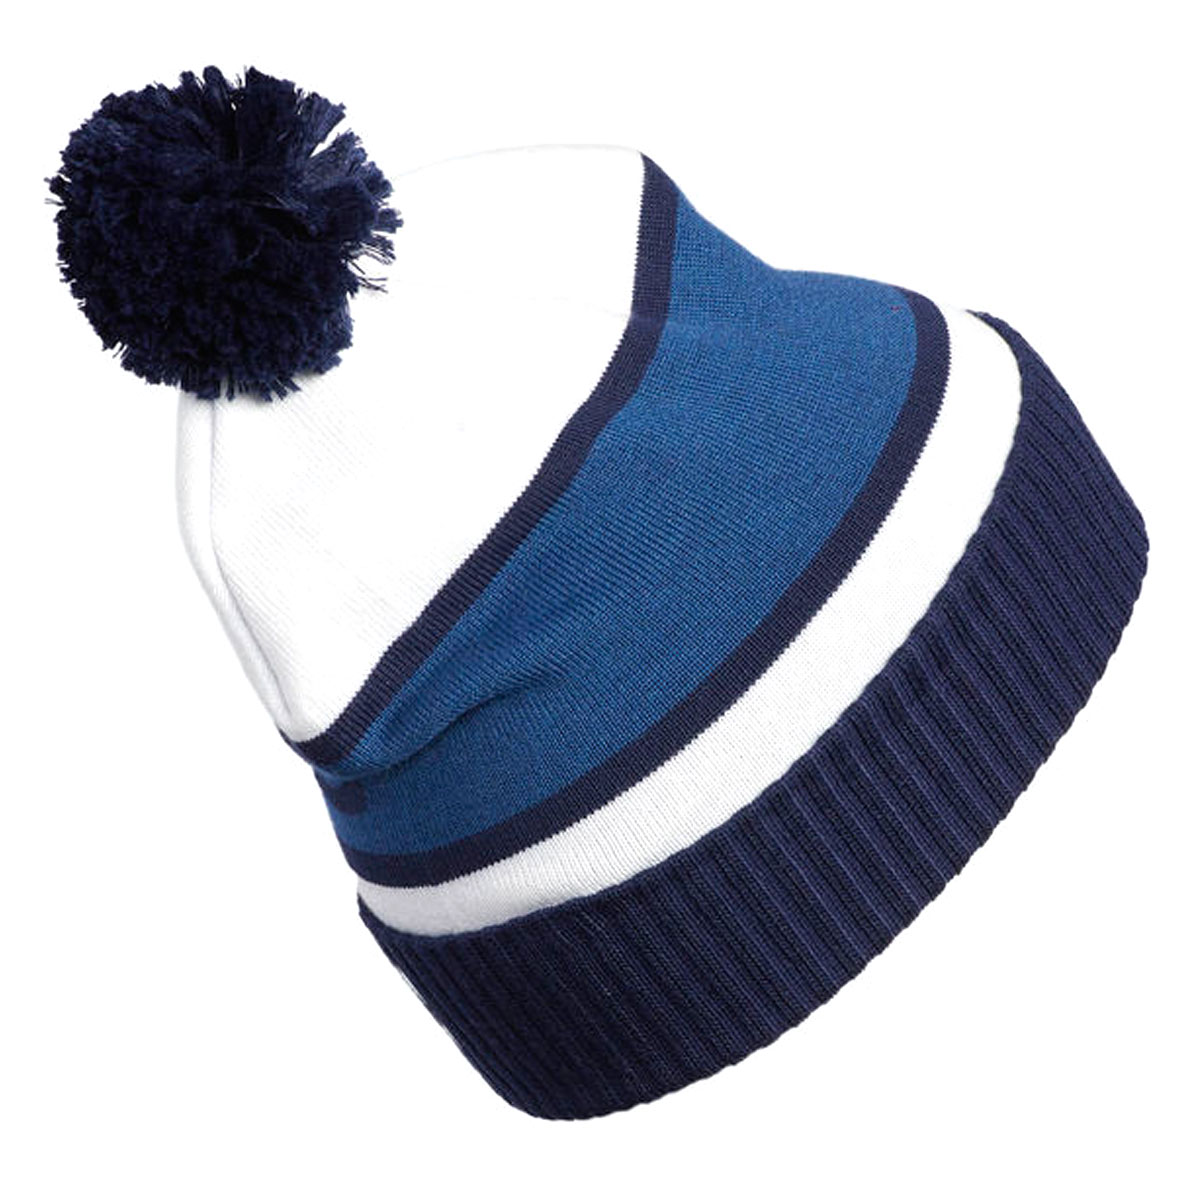 995bd0c49a528 adidas Golf Mens Pom Winter Knitted Cuffed Beanie Bobble Hat | eBay